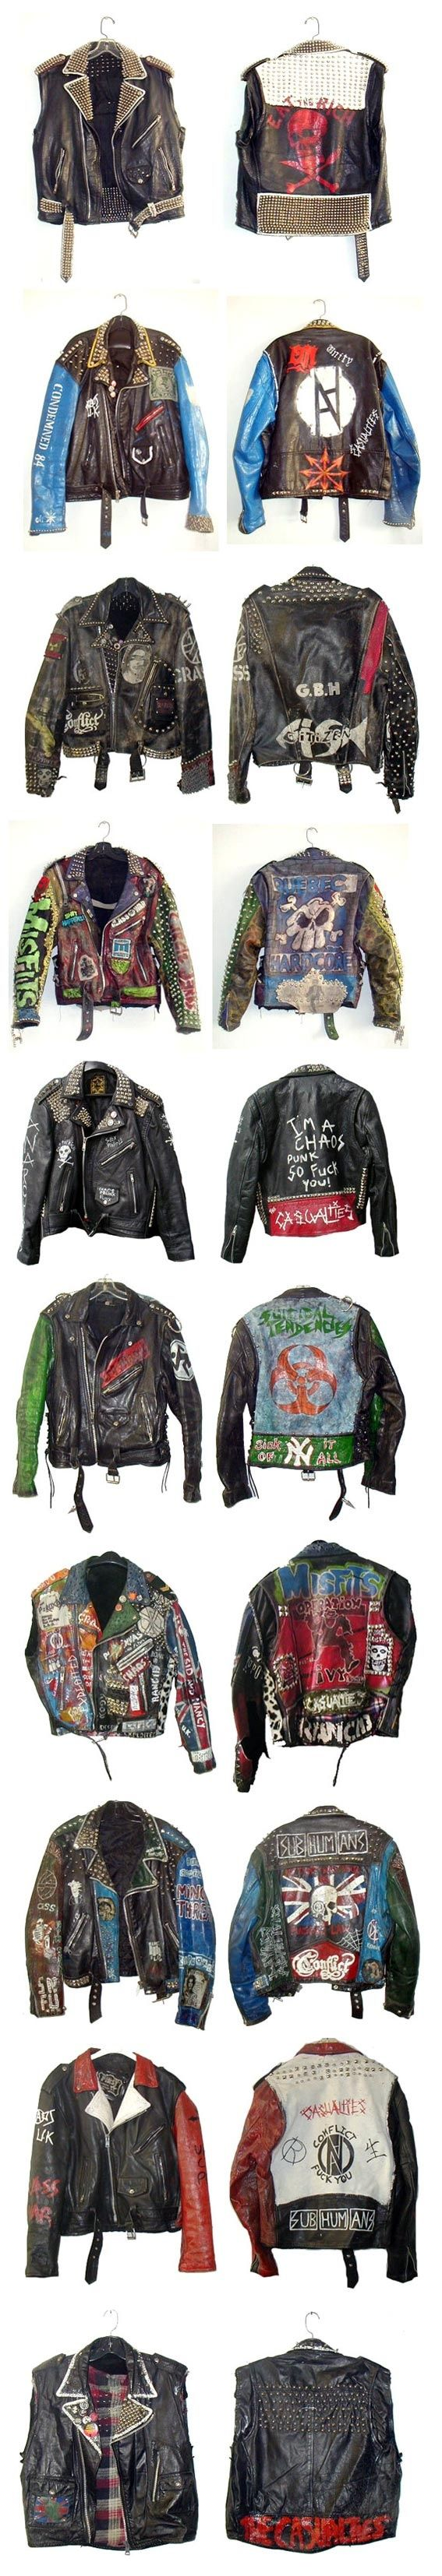 At Eagle Ages We Love Motorcycle Jackets!!!